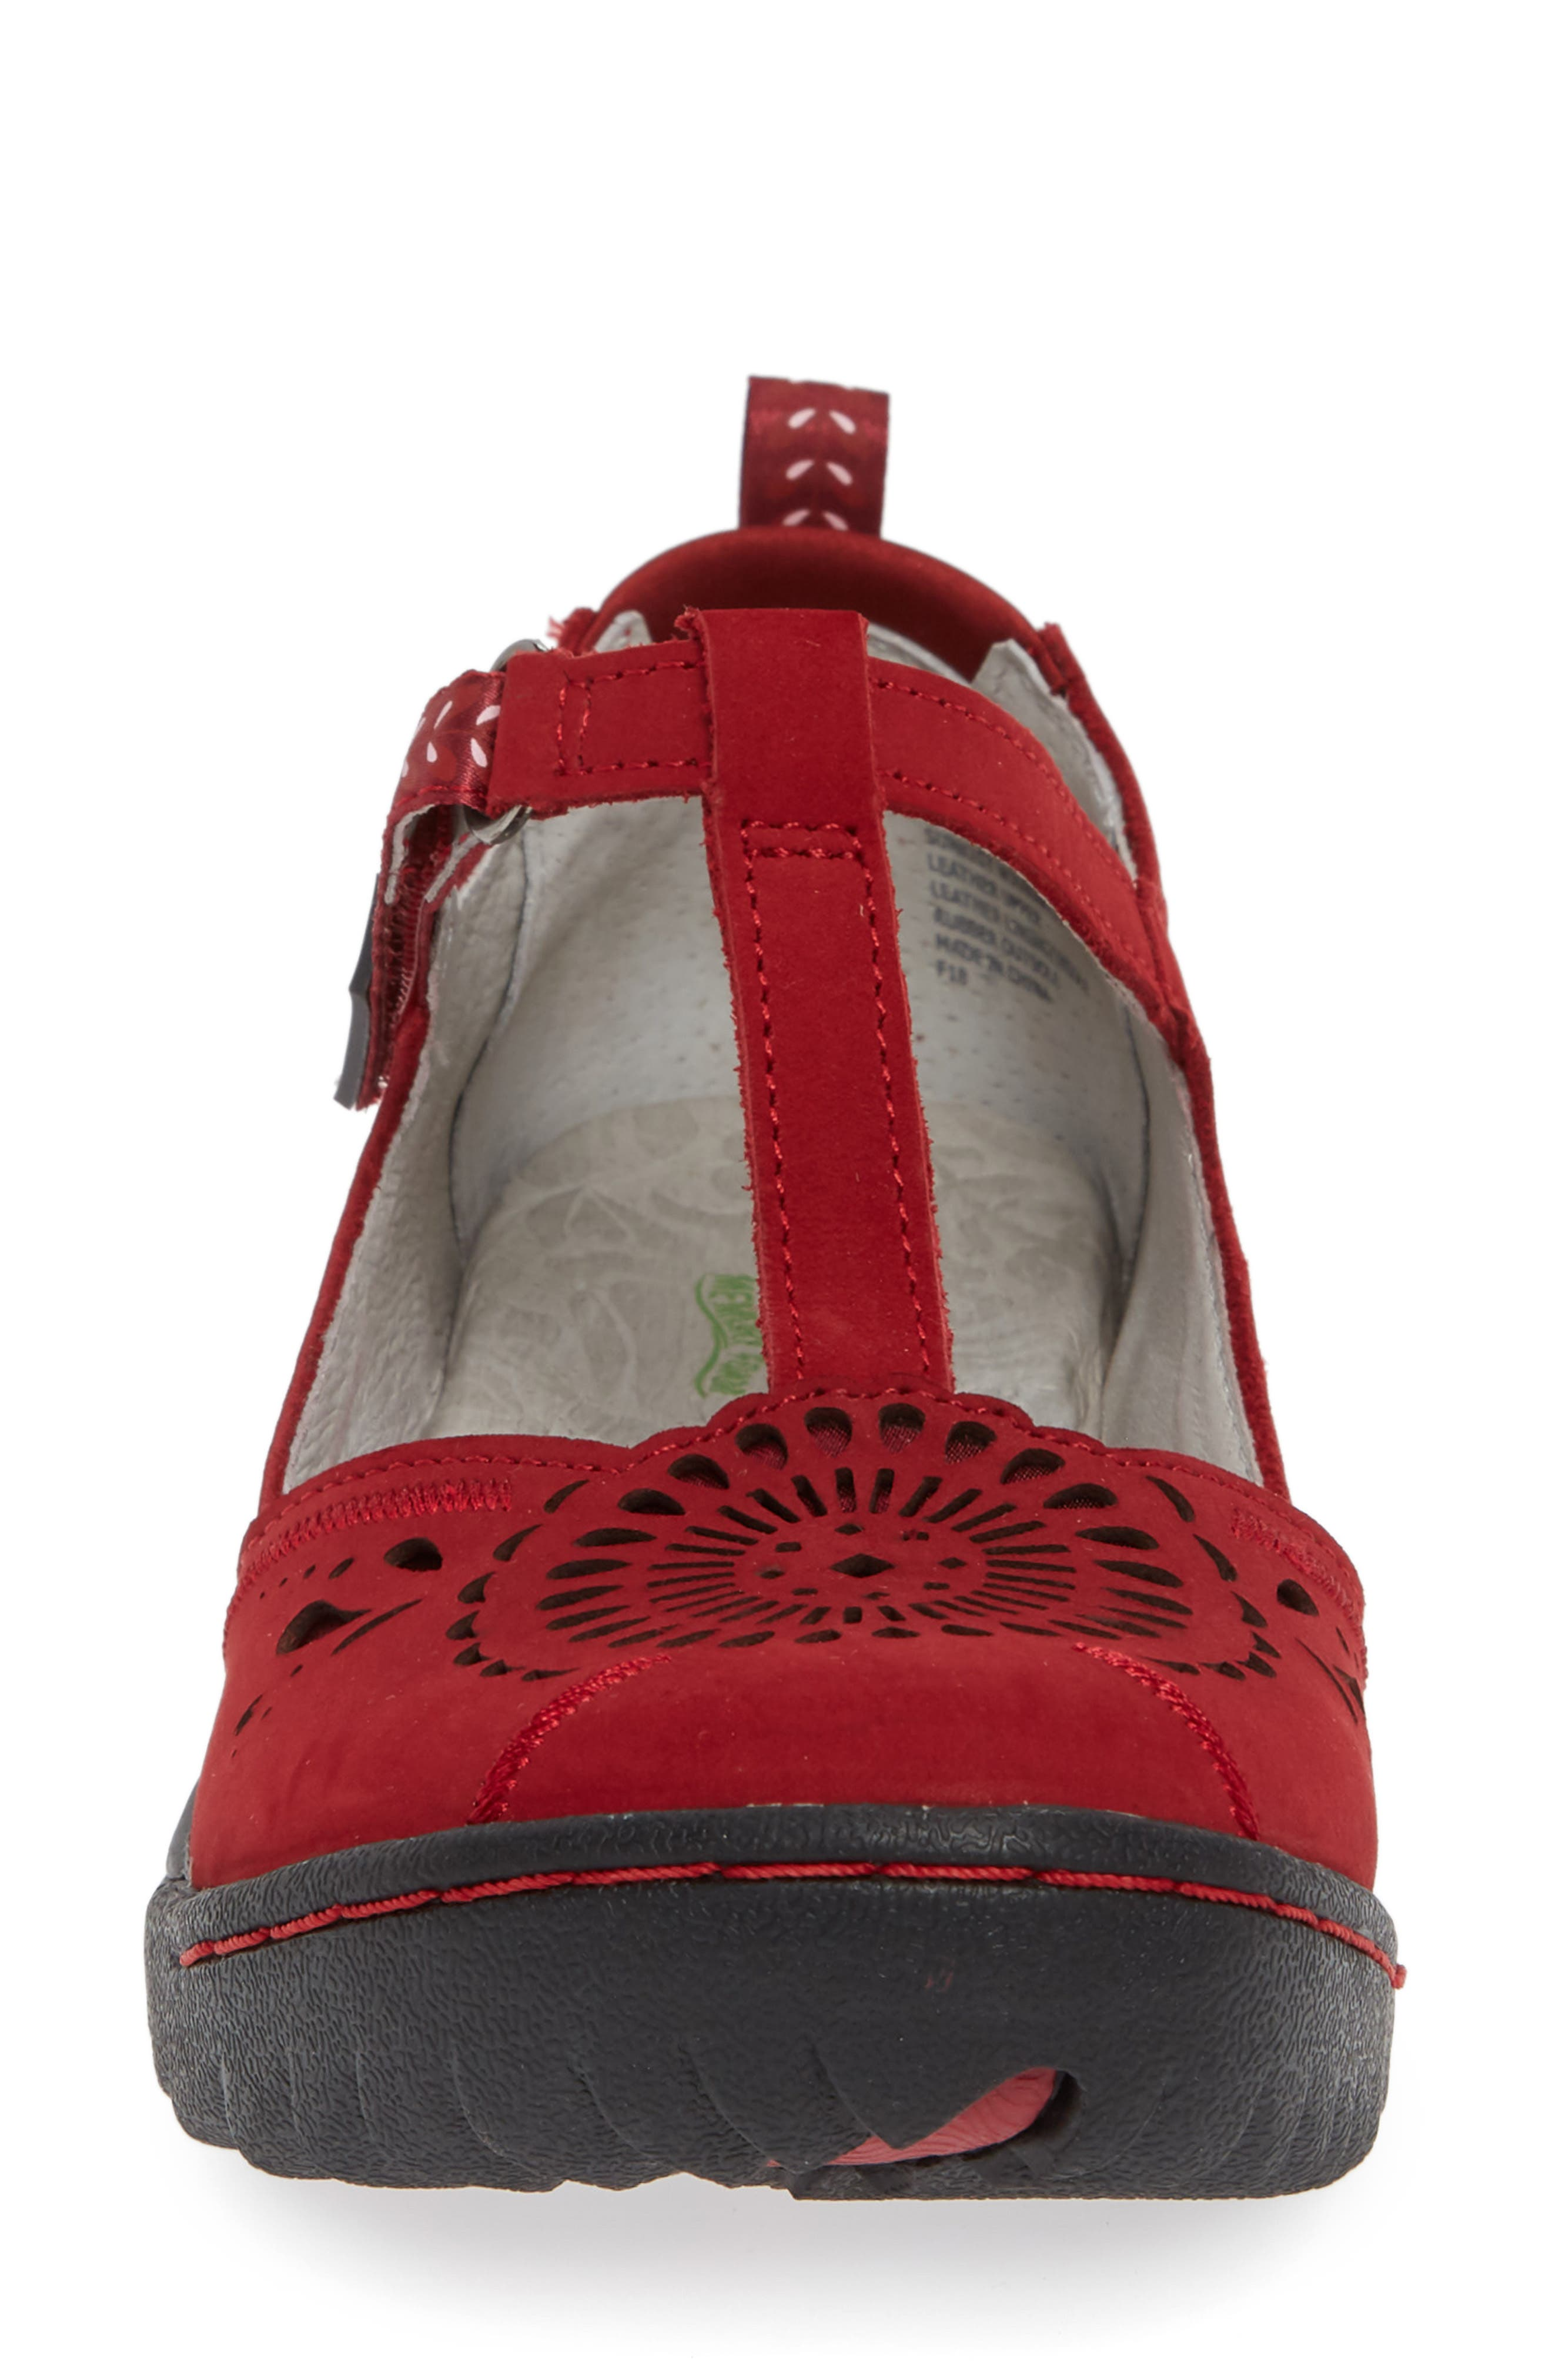 Sunkist Strappy Sneaker,                             Alternate thumbnail 4, color,                             RED/ PETAL NUBUCK LEATHER